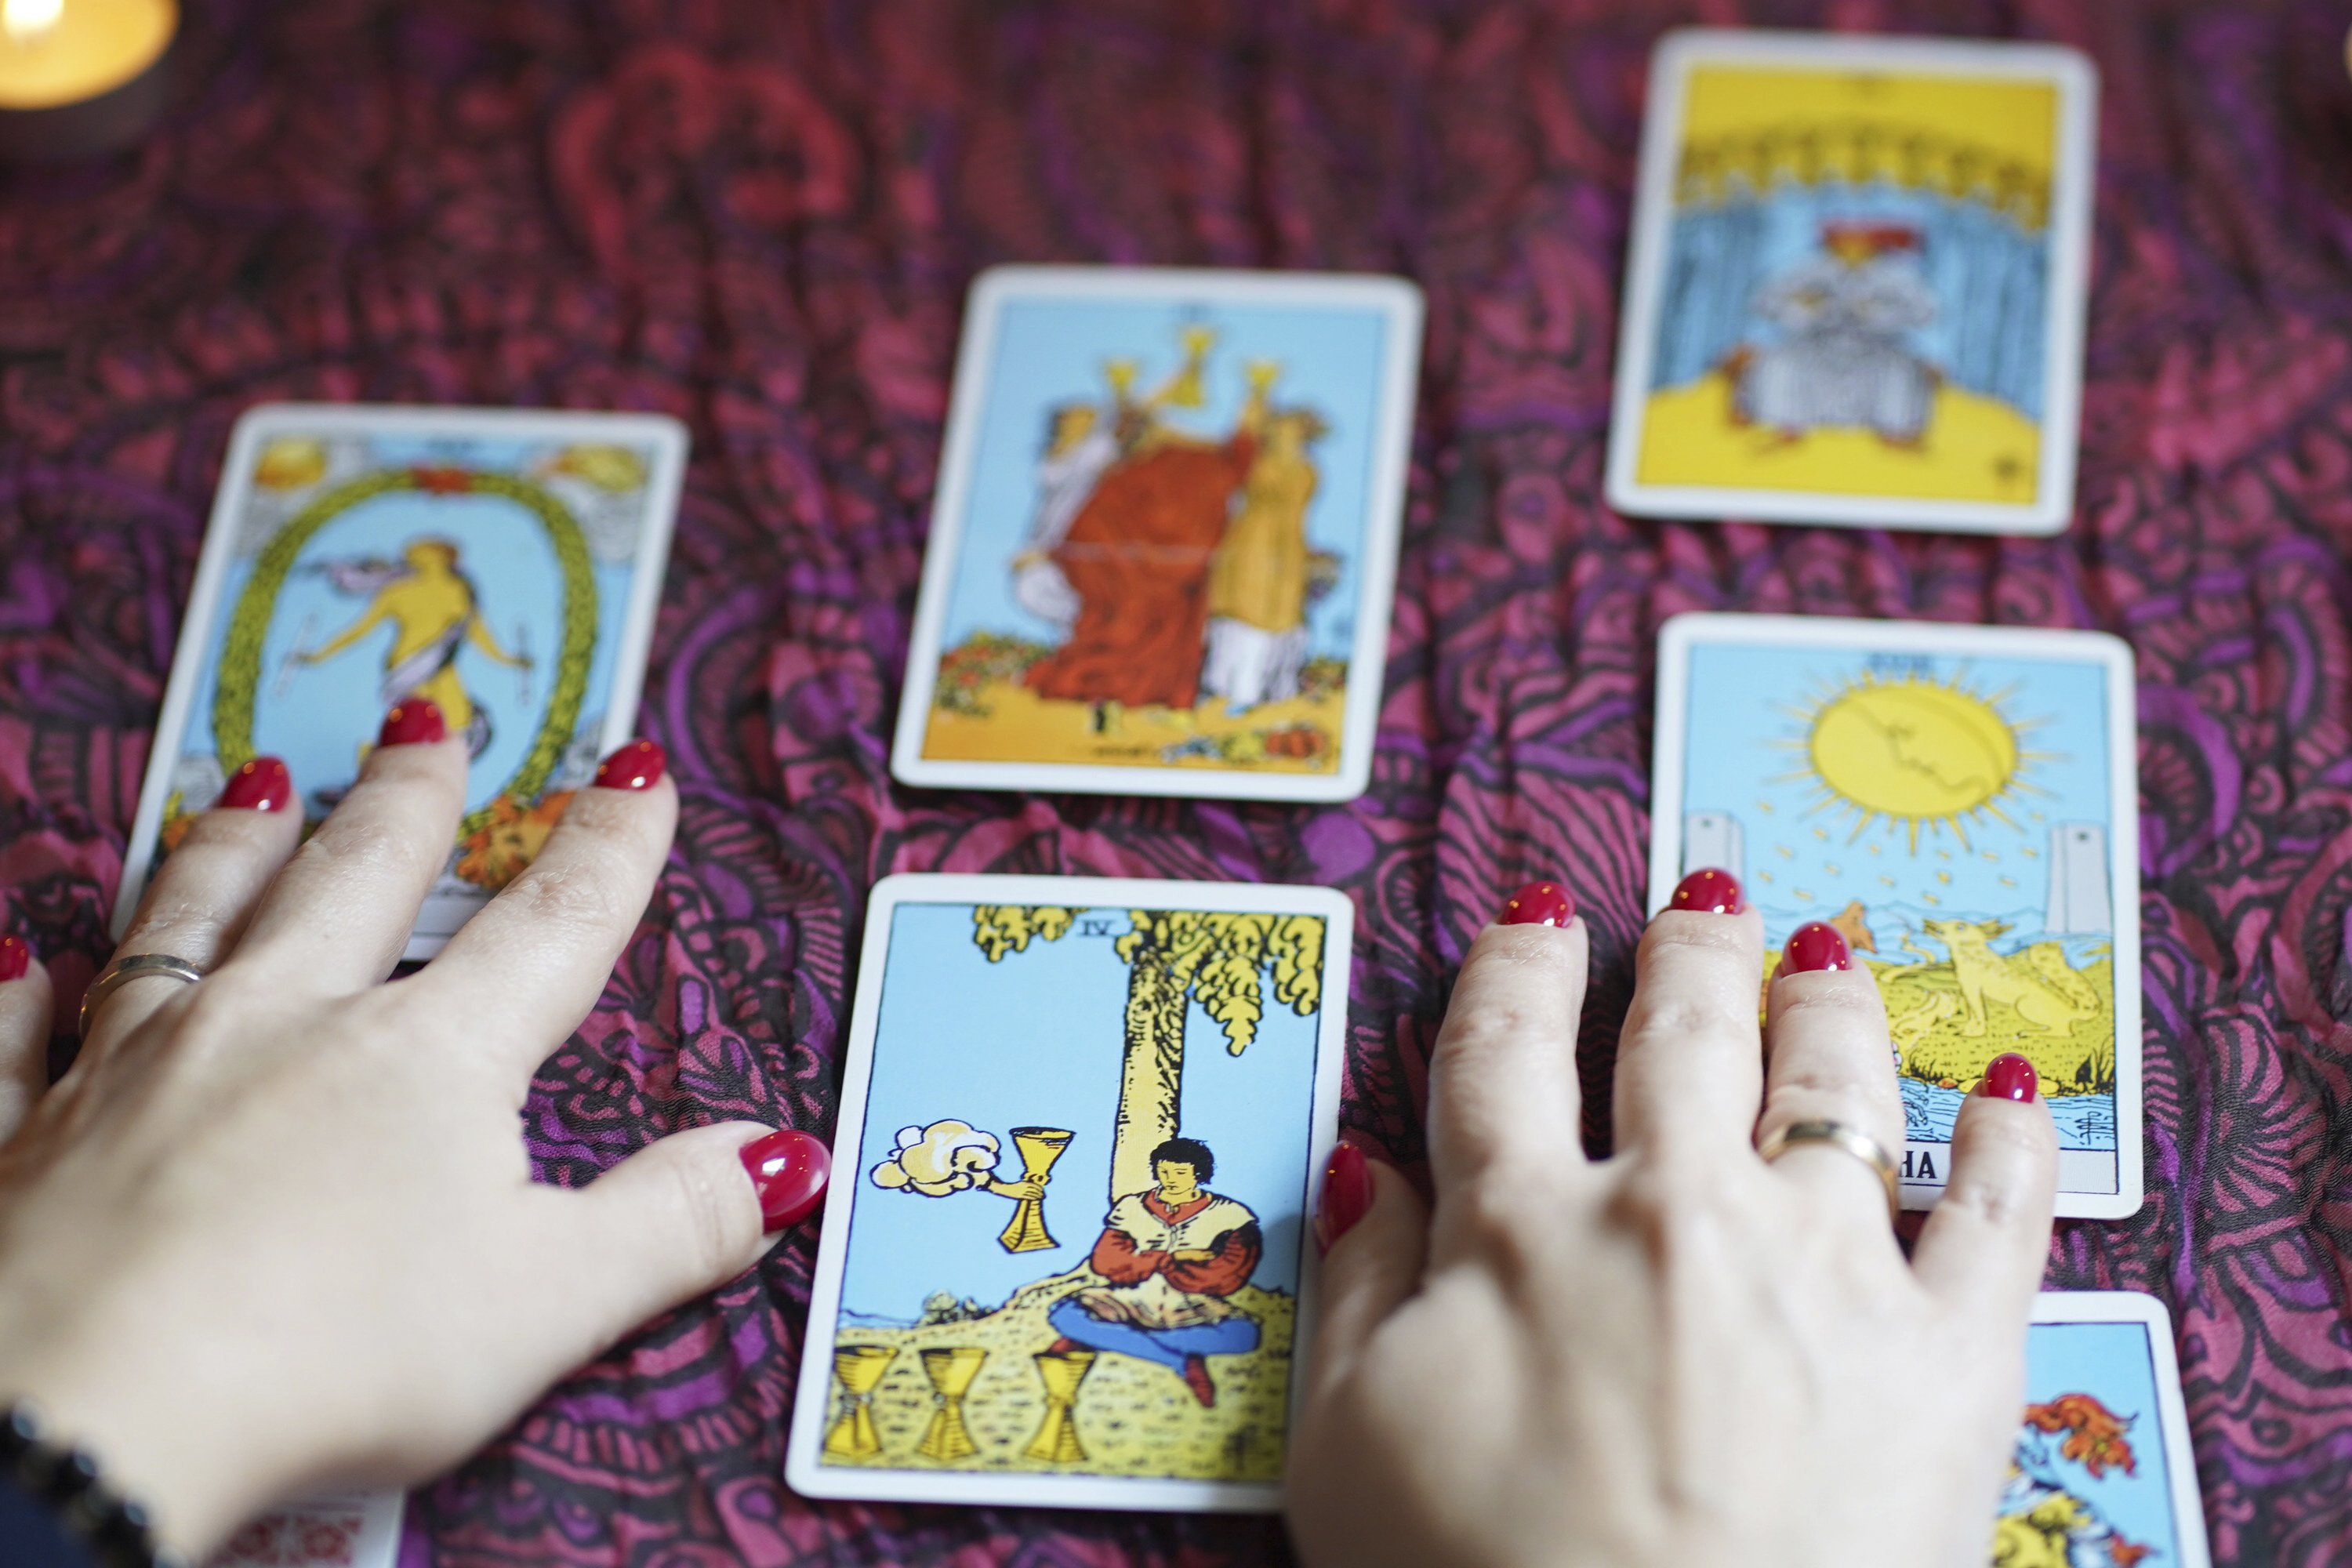 editorial tarot cards, fortune telling and predictions example image 1